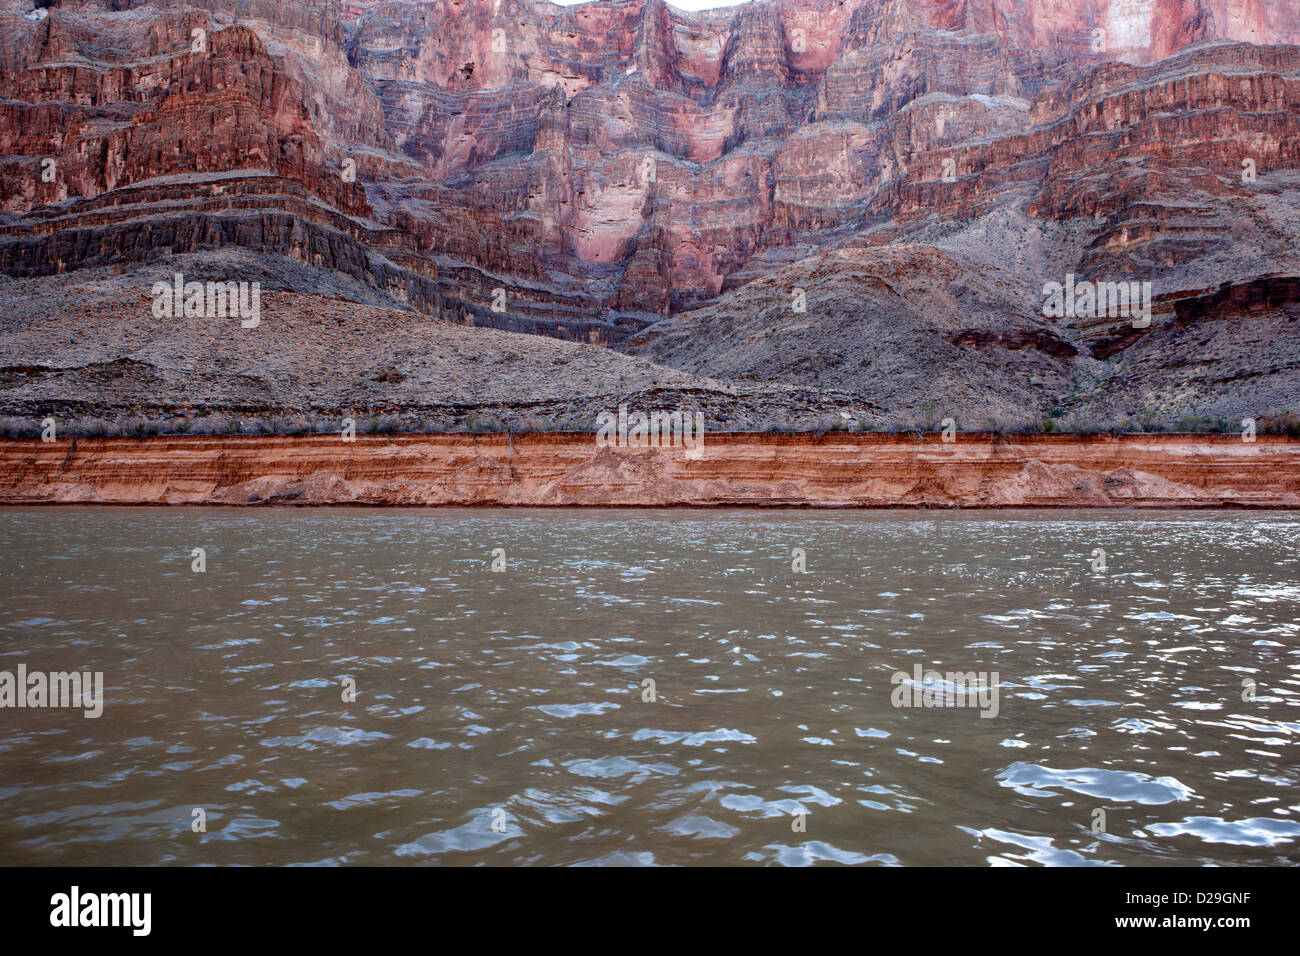 geologic details of rock strata and erosion on the wall of the grand canyon and colorado river Arizona USA - Stock Image